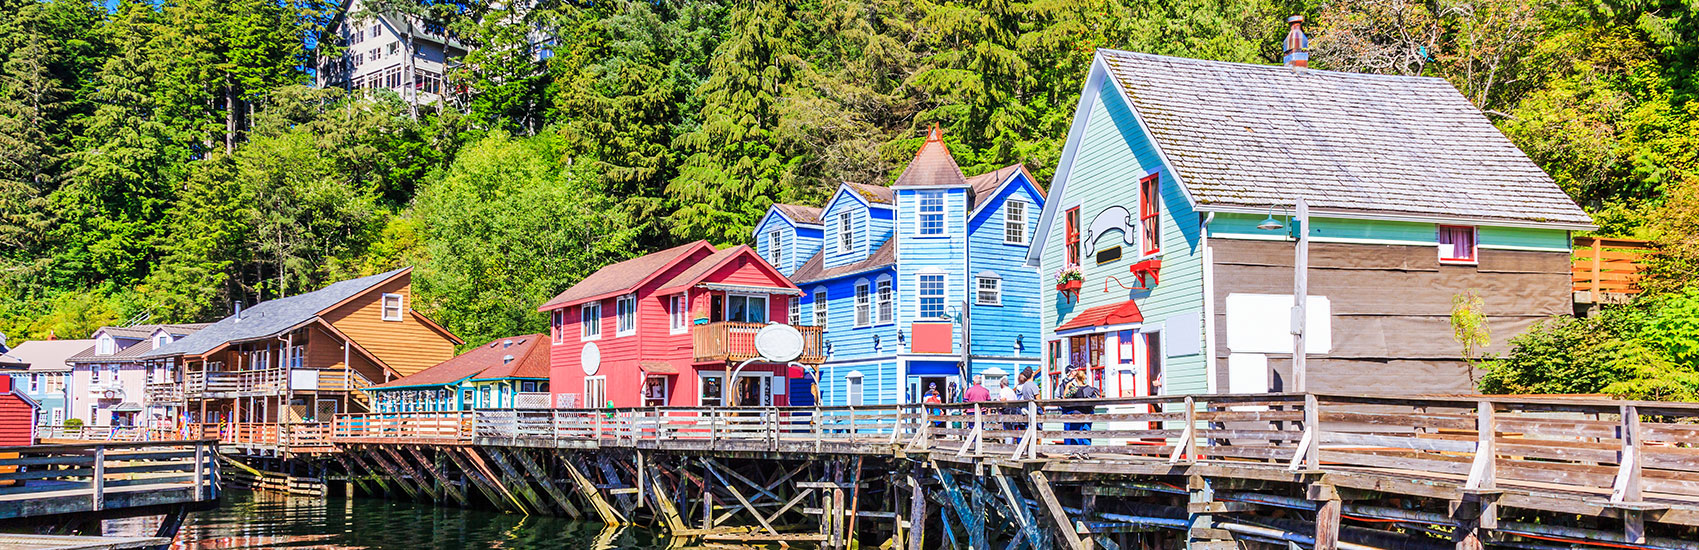 Limited Time Offer to Alaska with Holland America 3